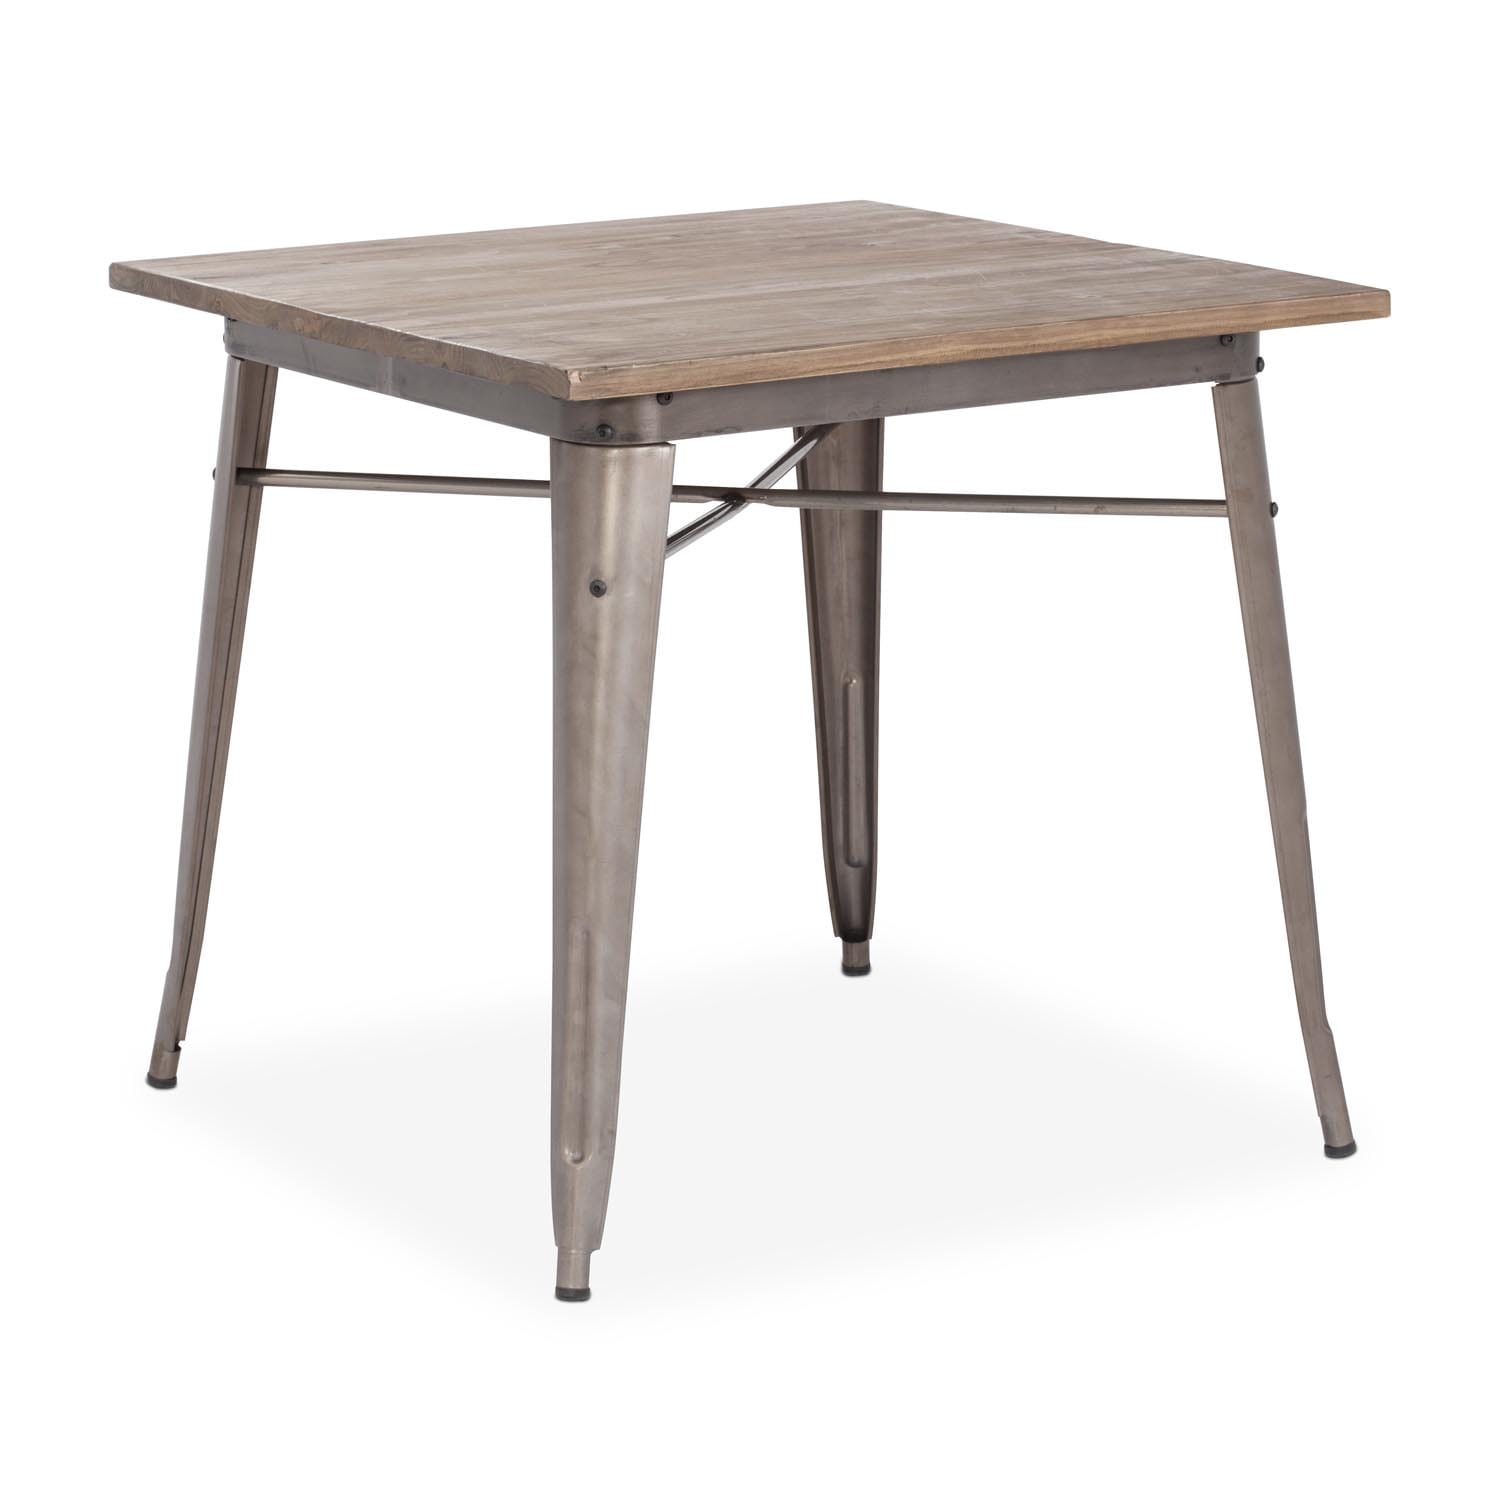 Dining Room Furniture - Rustica Dining Table